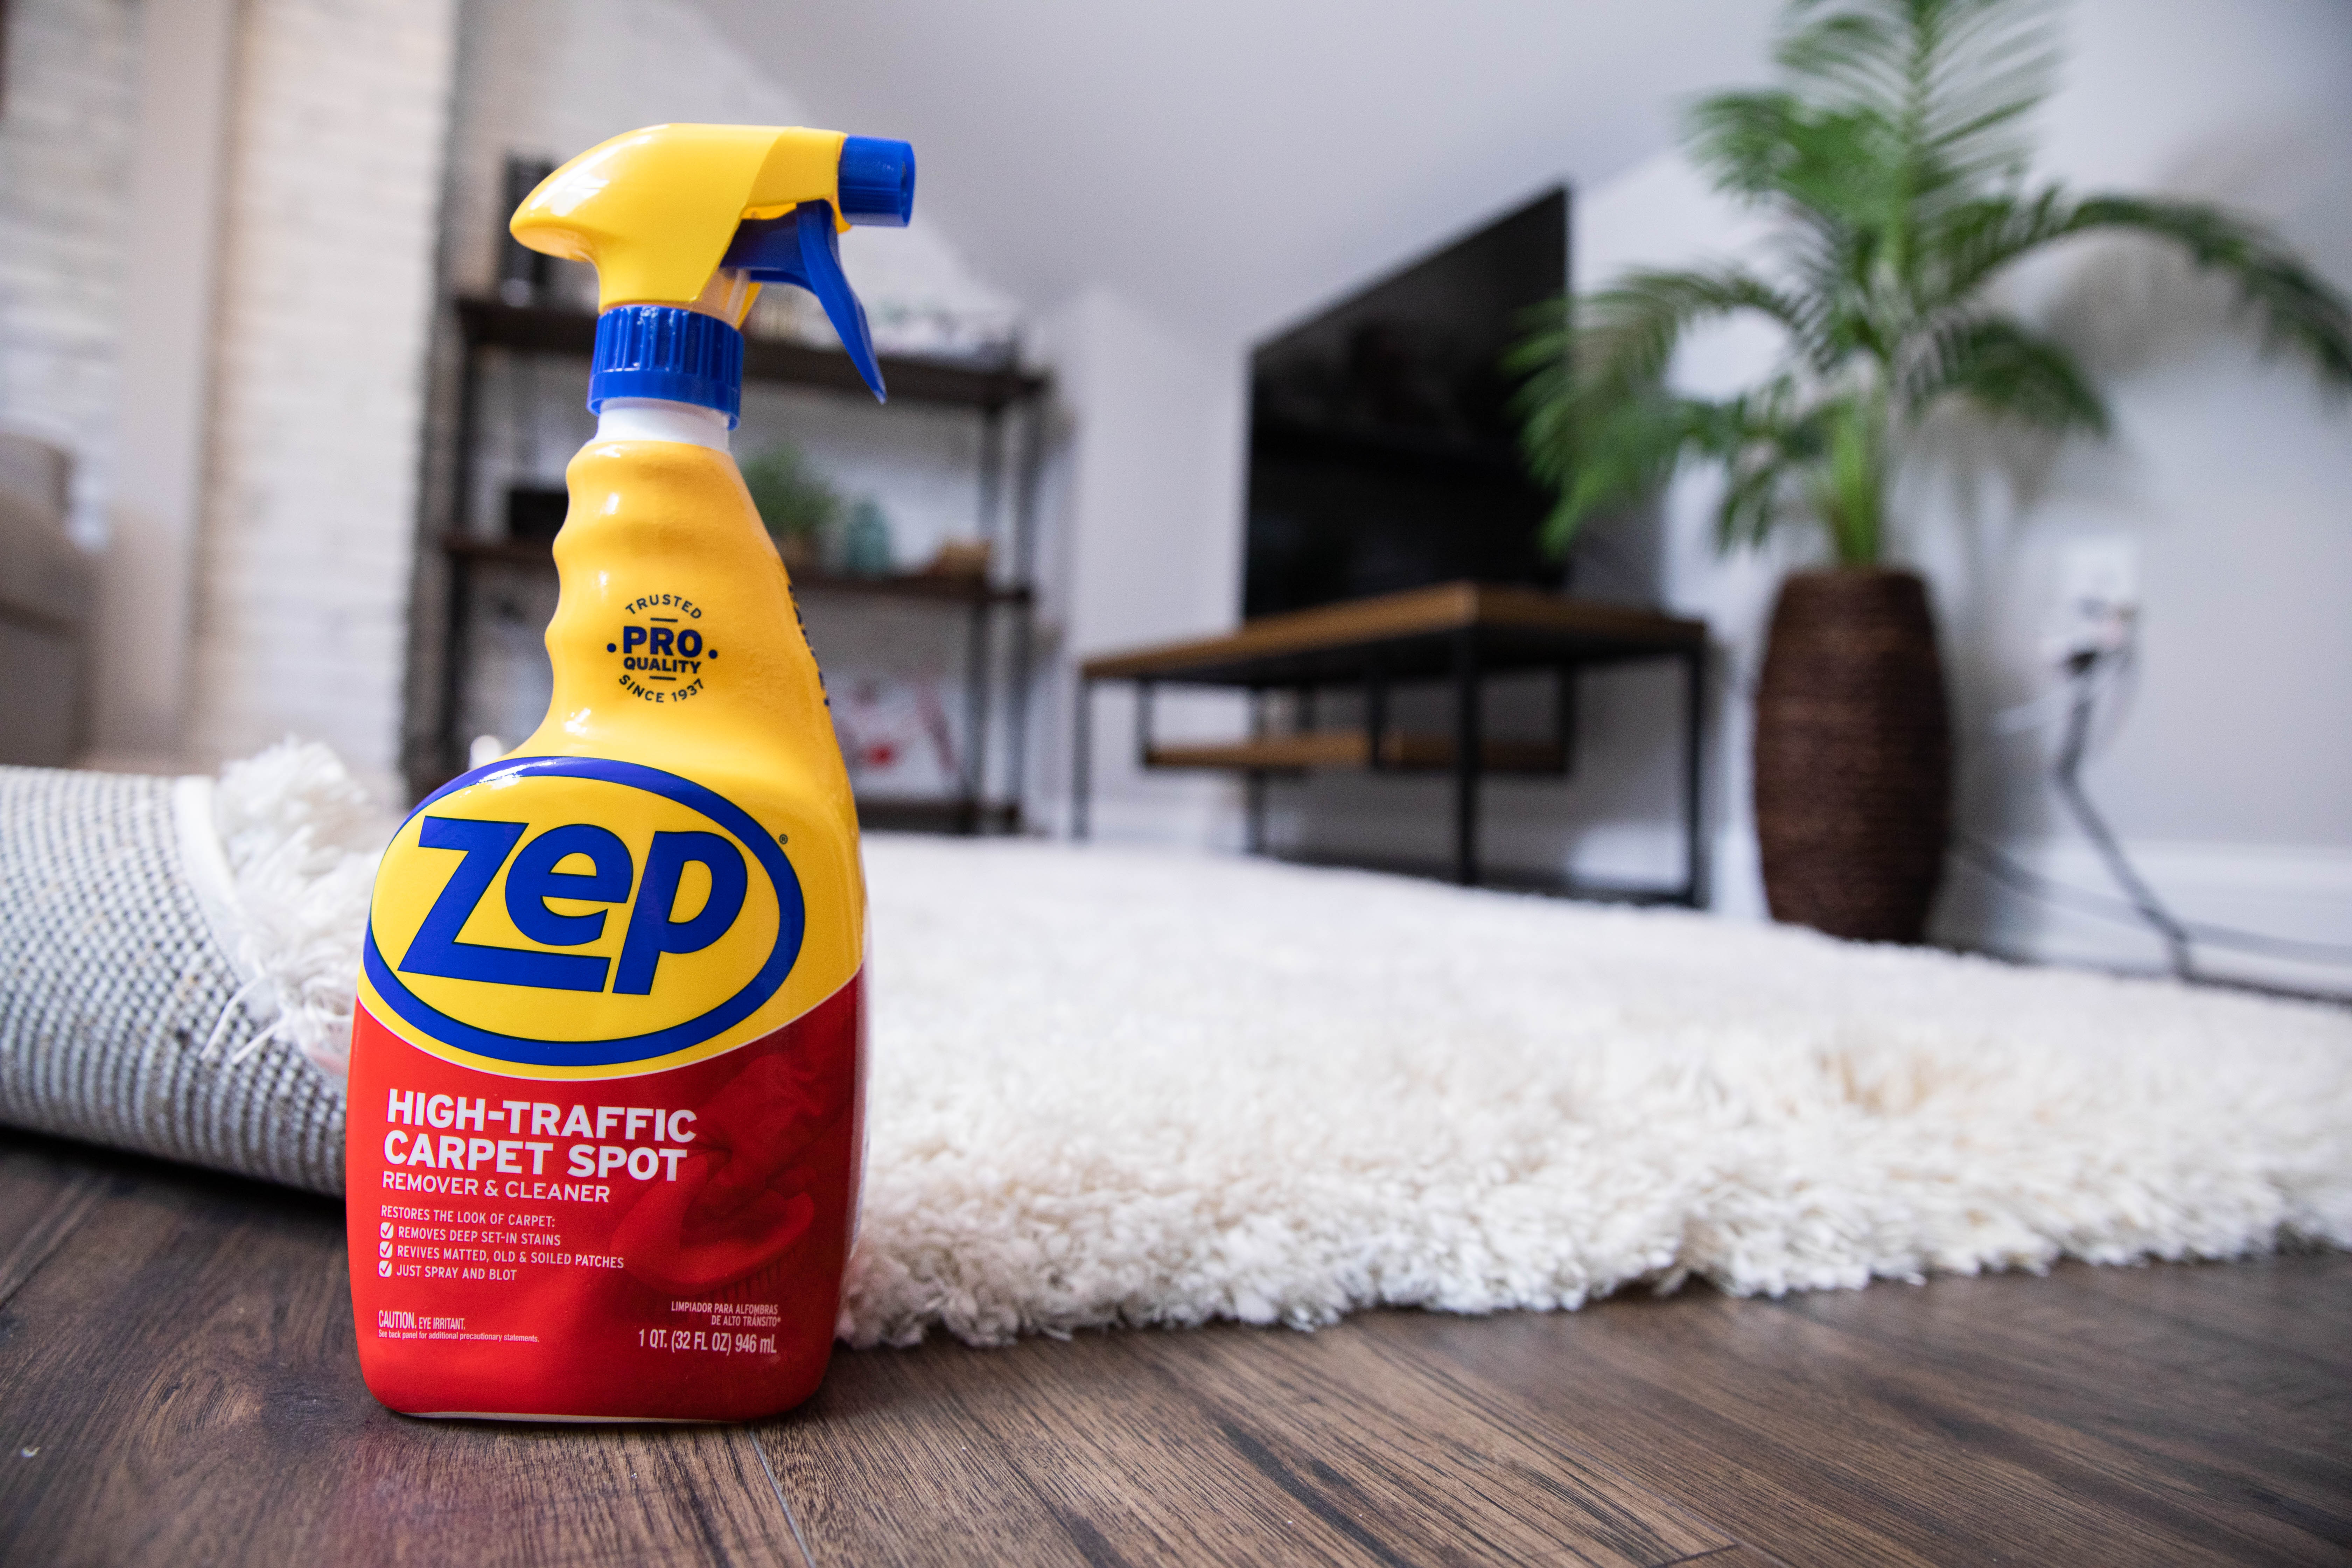 Zep_High_Traffic_Carpet_Spot_Cleaner